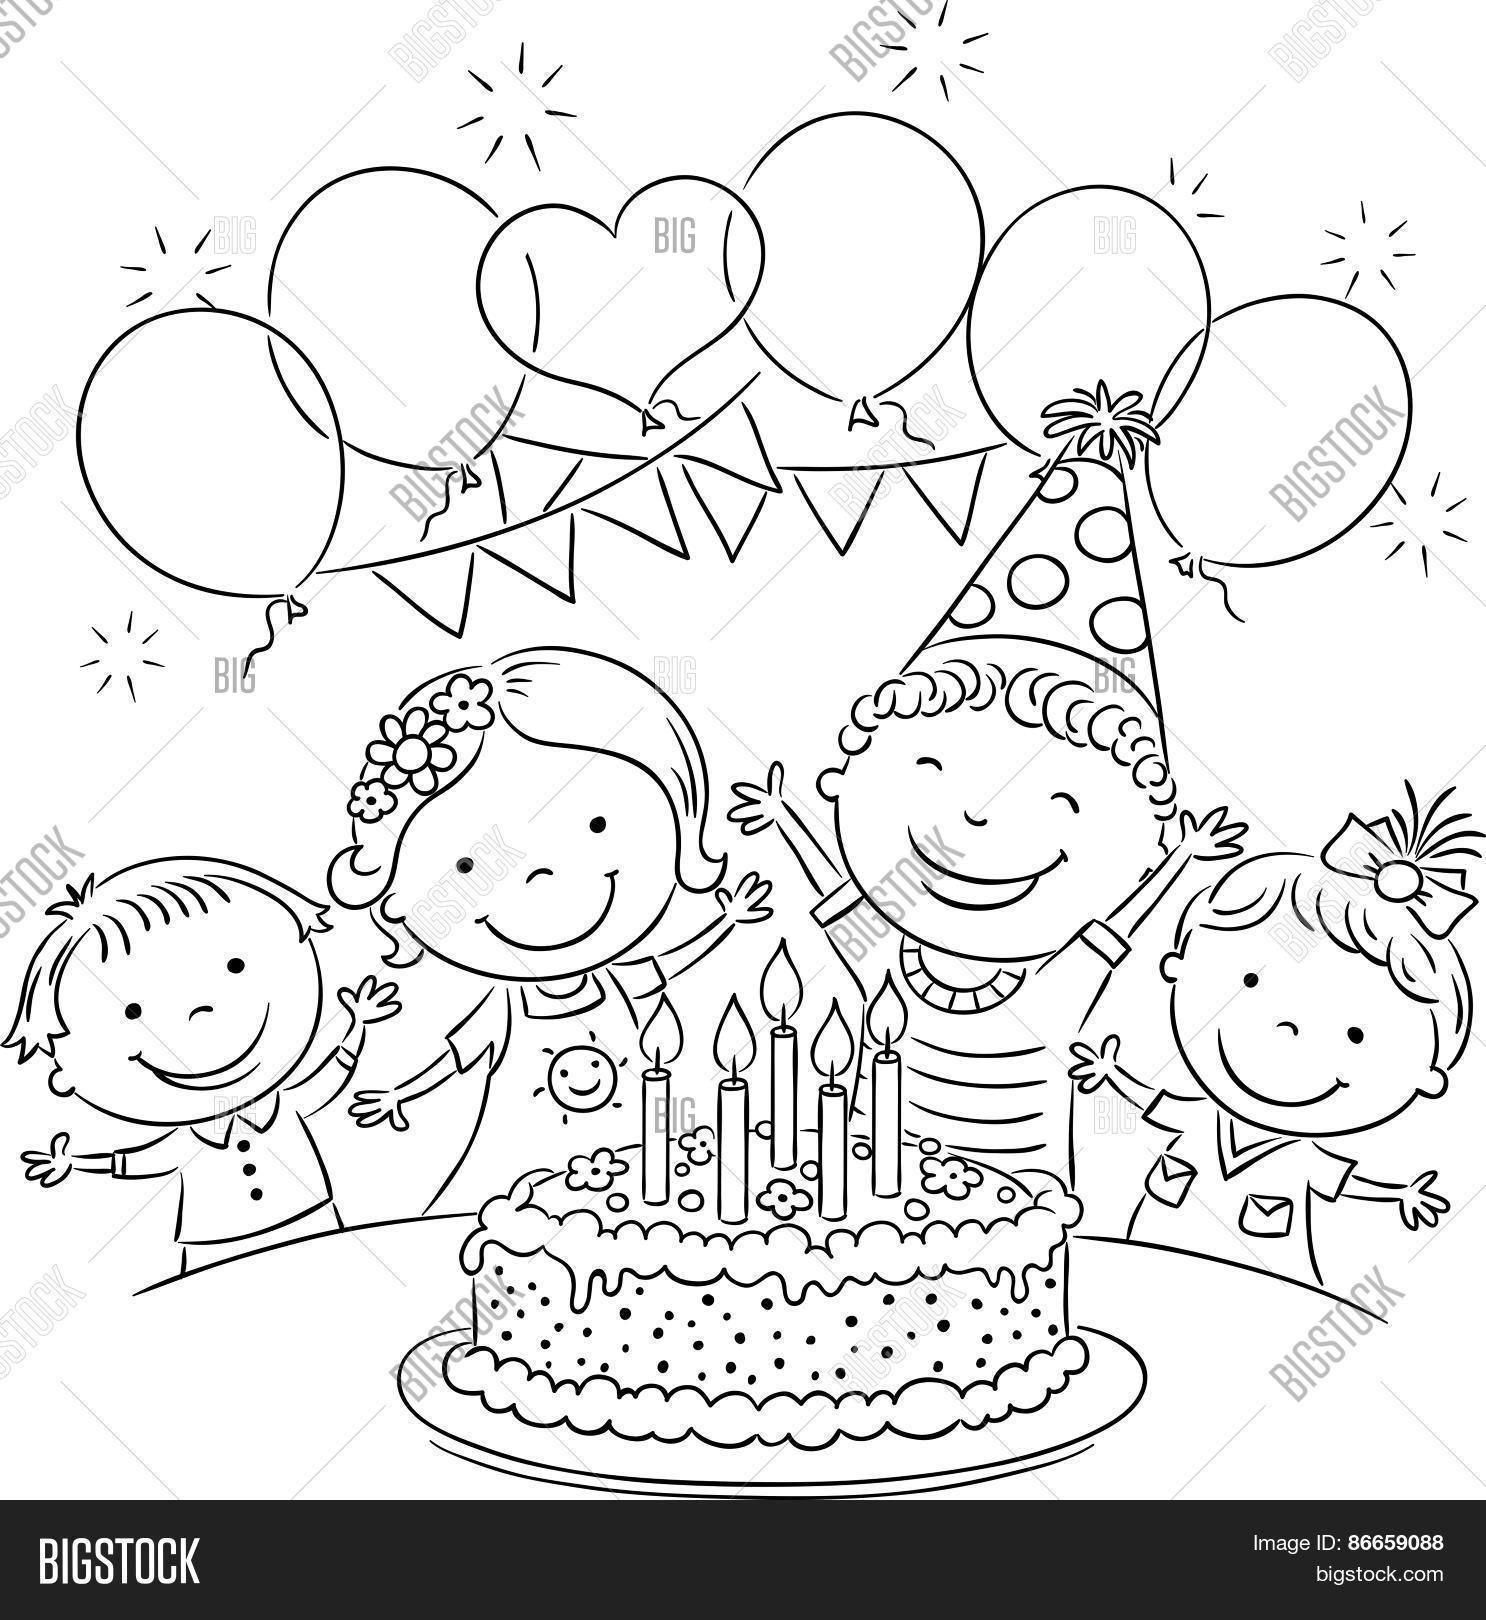 birthday party drawing pictures ; birthday-party-drawing-pictures-kids-birthday-party-outline-stock-vector-stock-photos-bigstock